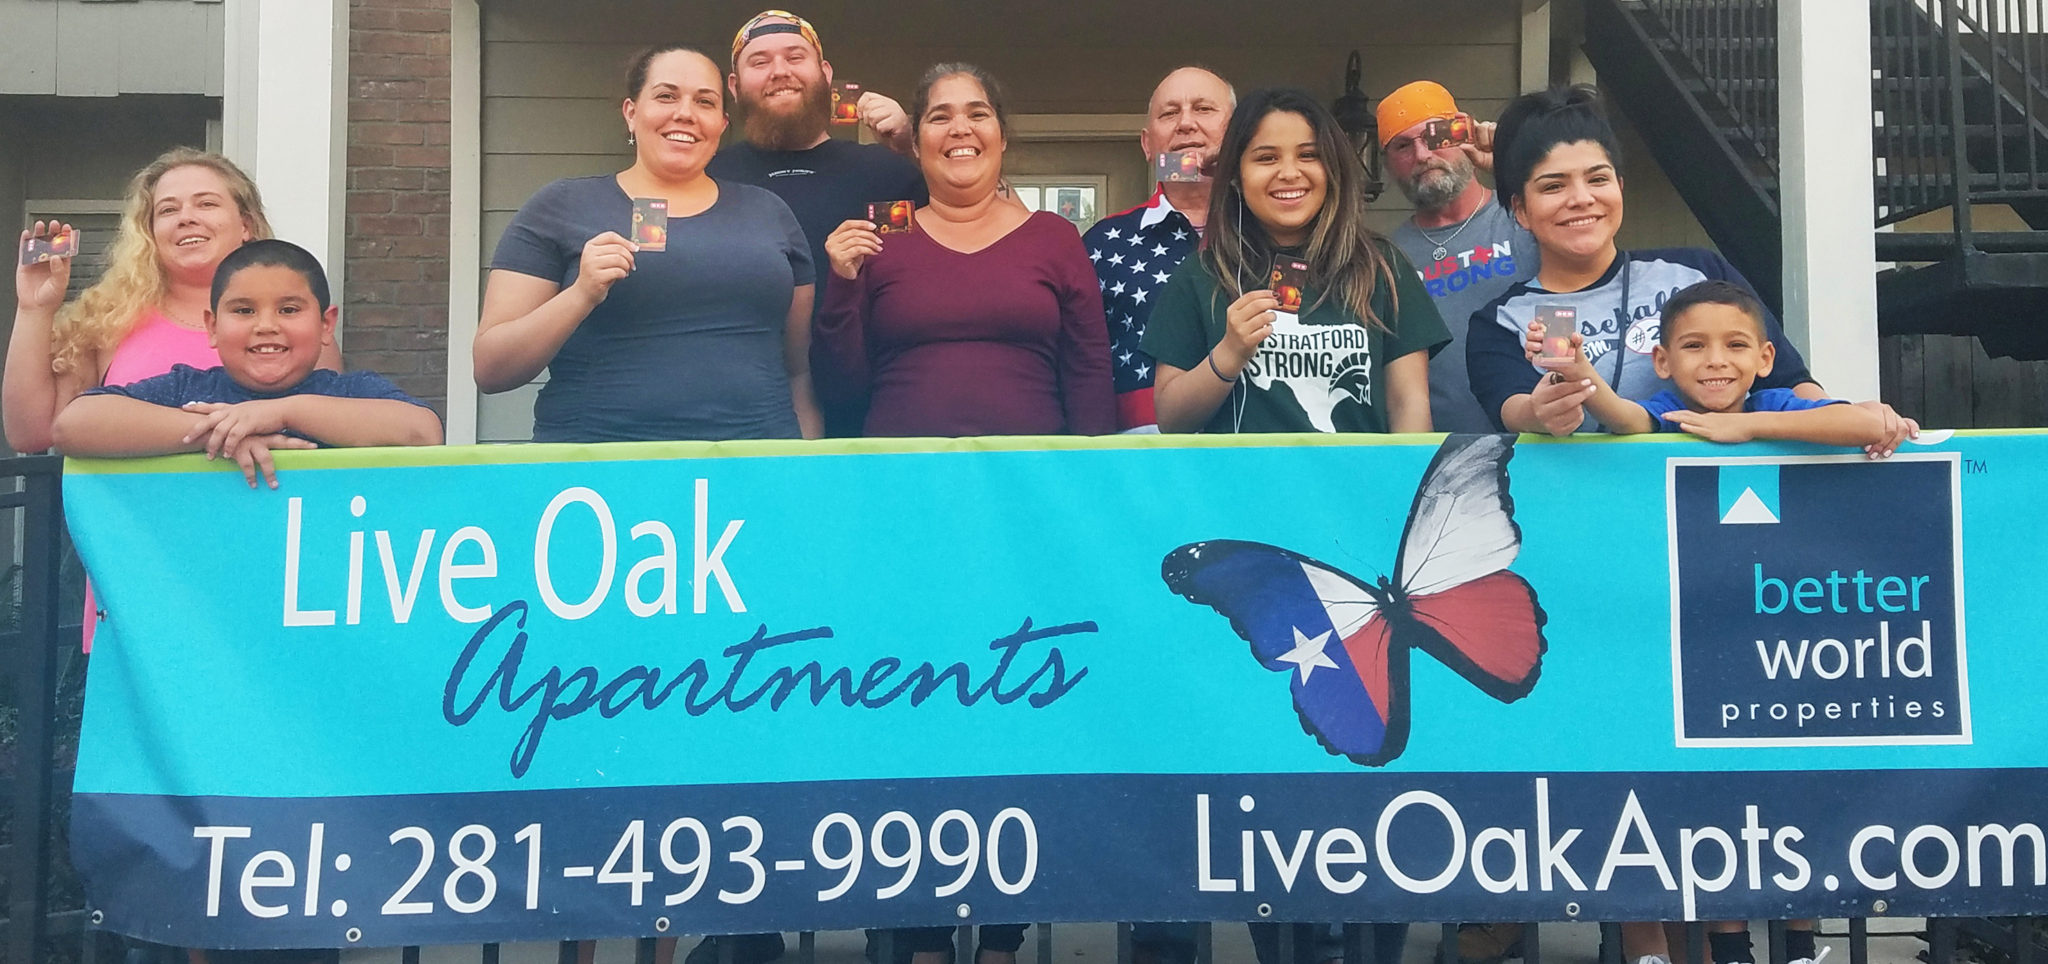 Live Oak Apartment Better World Properties_SSmiles After Harvey_Dinner Is On Us